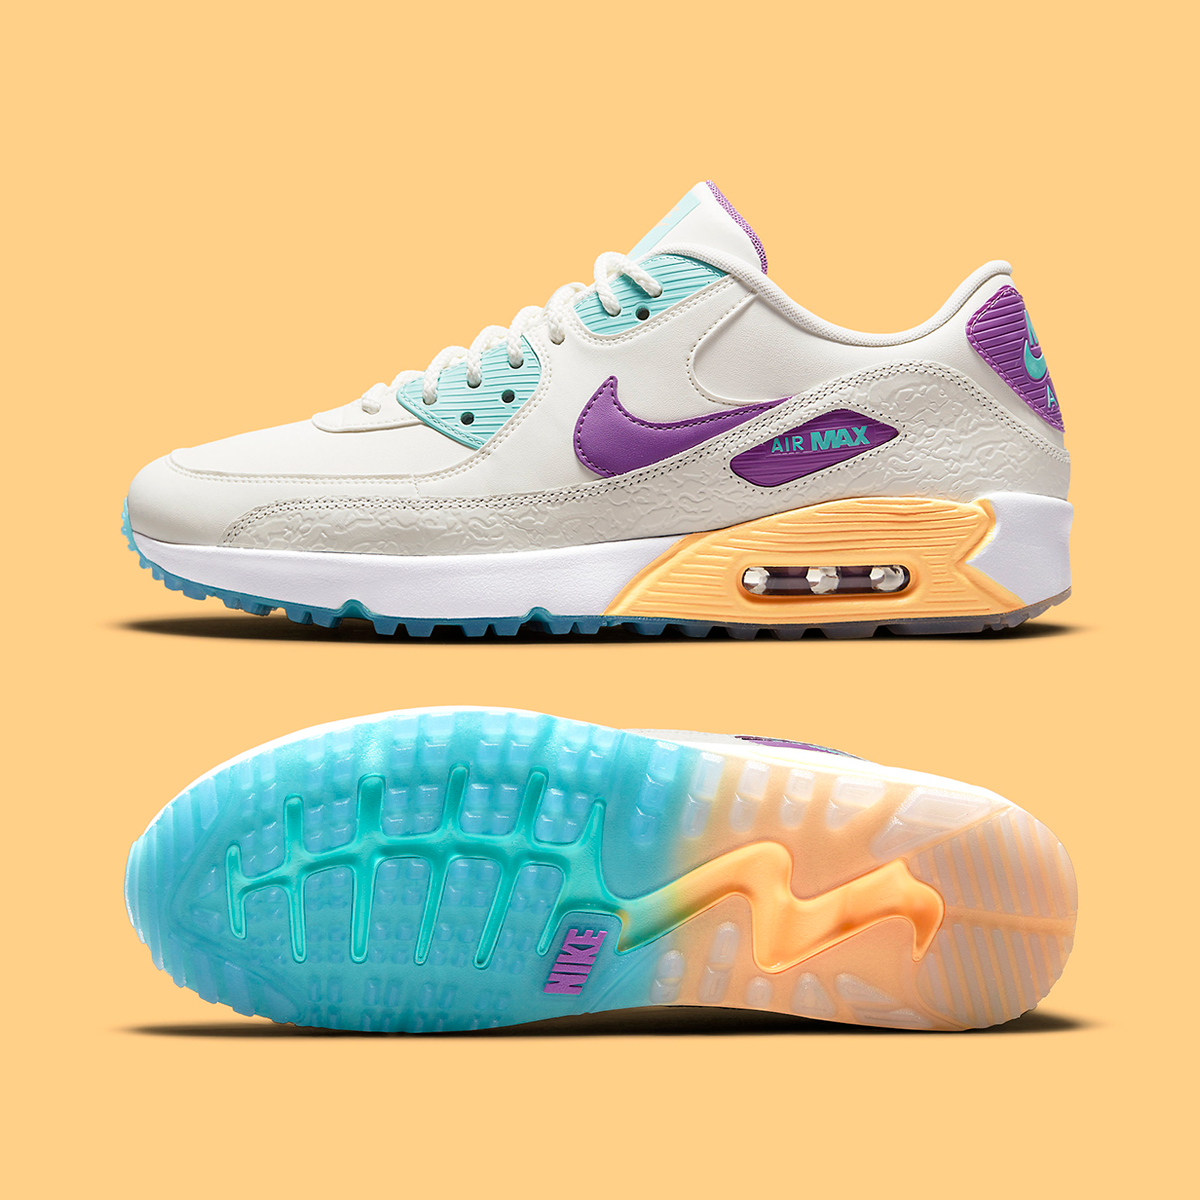 Nike Air Max 90 Golf Gets a Tropical Twist for Summer | HOUSE OF HEAT